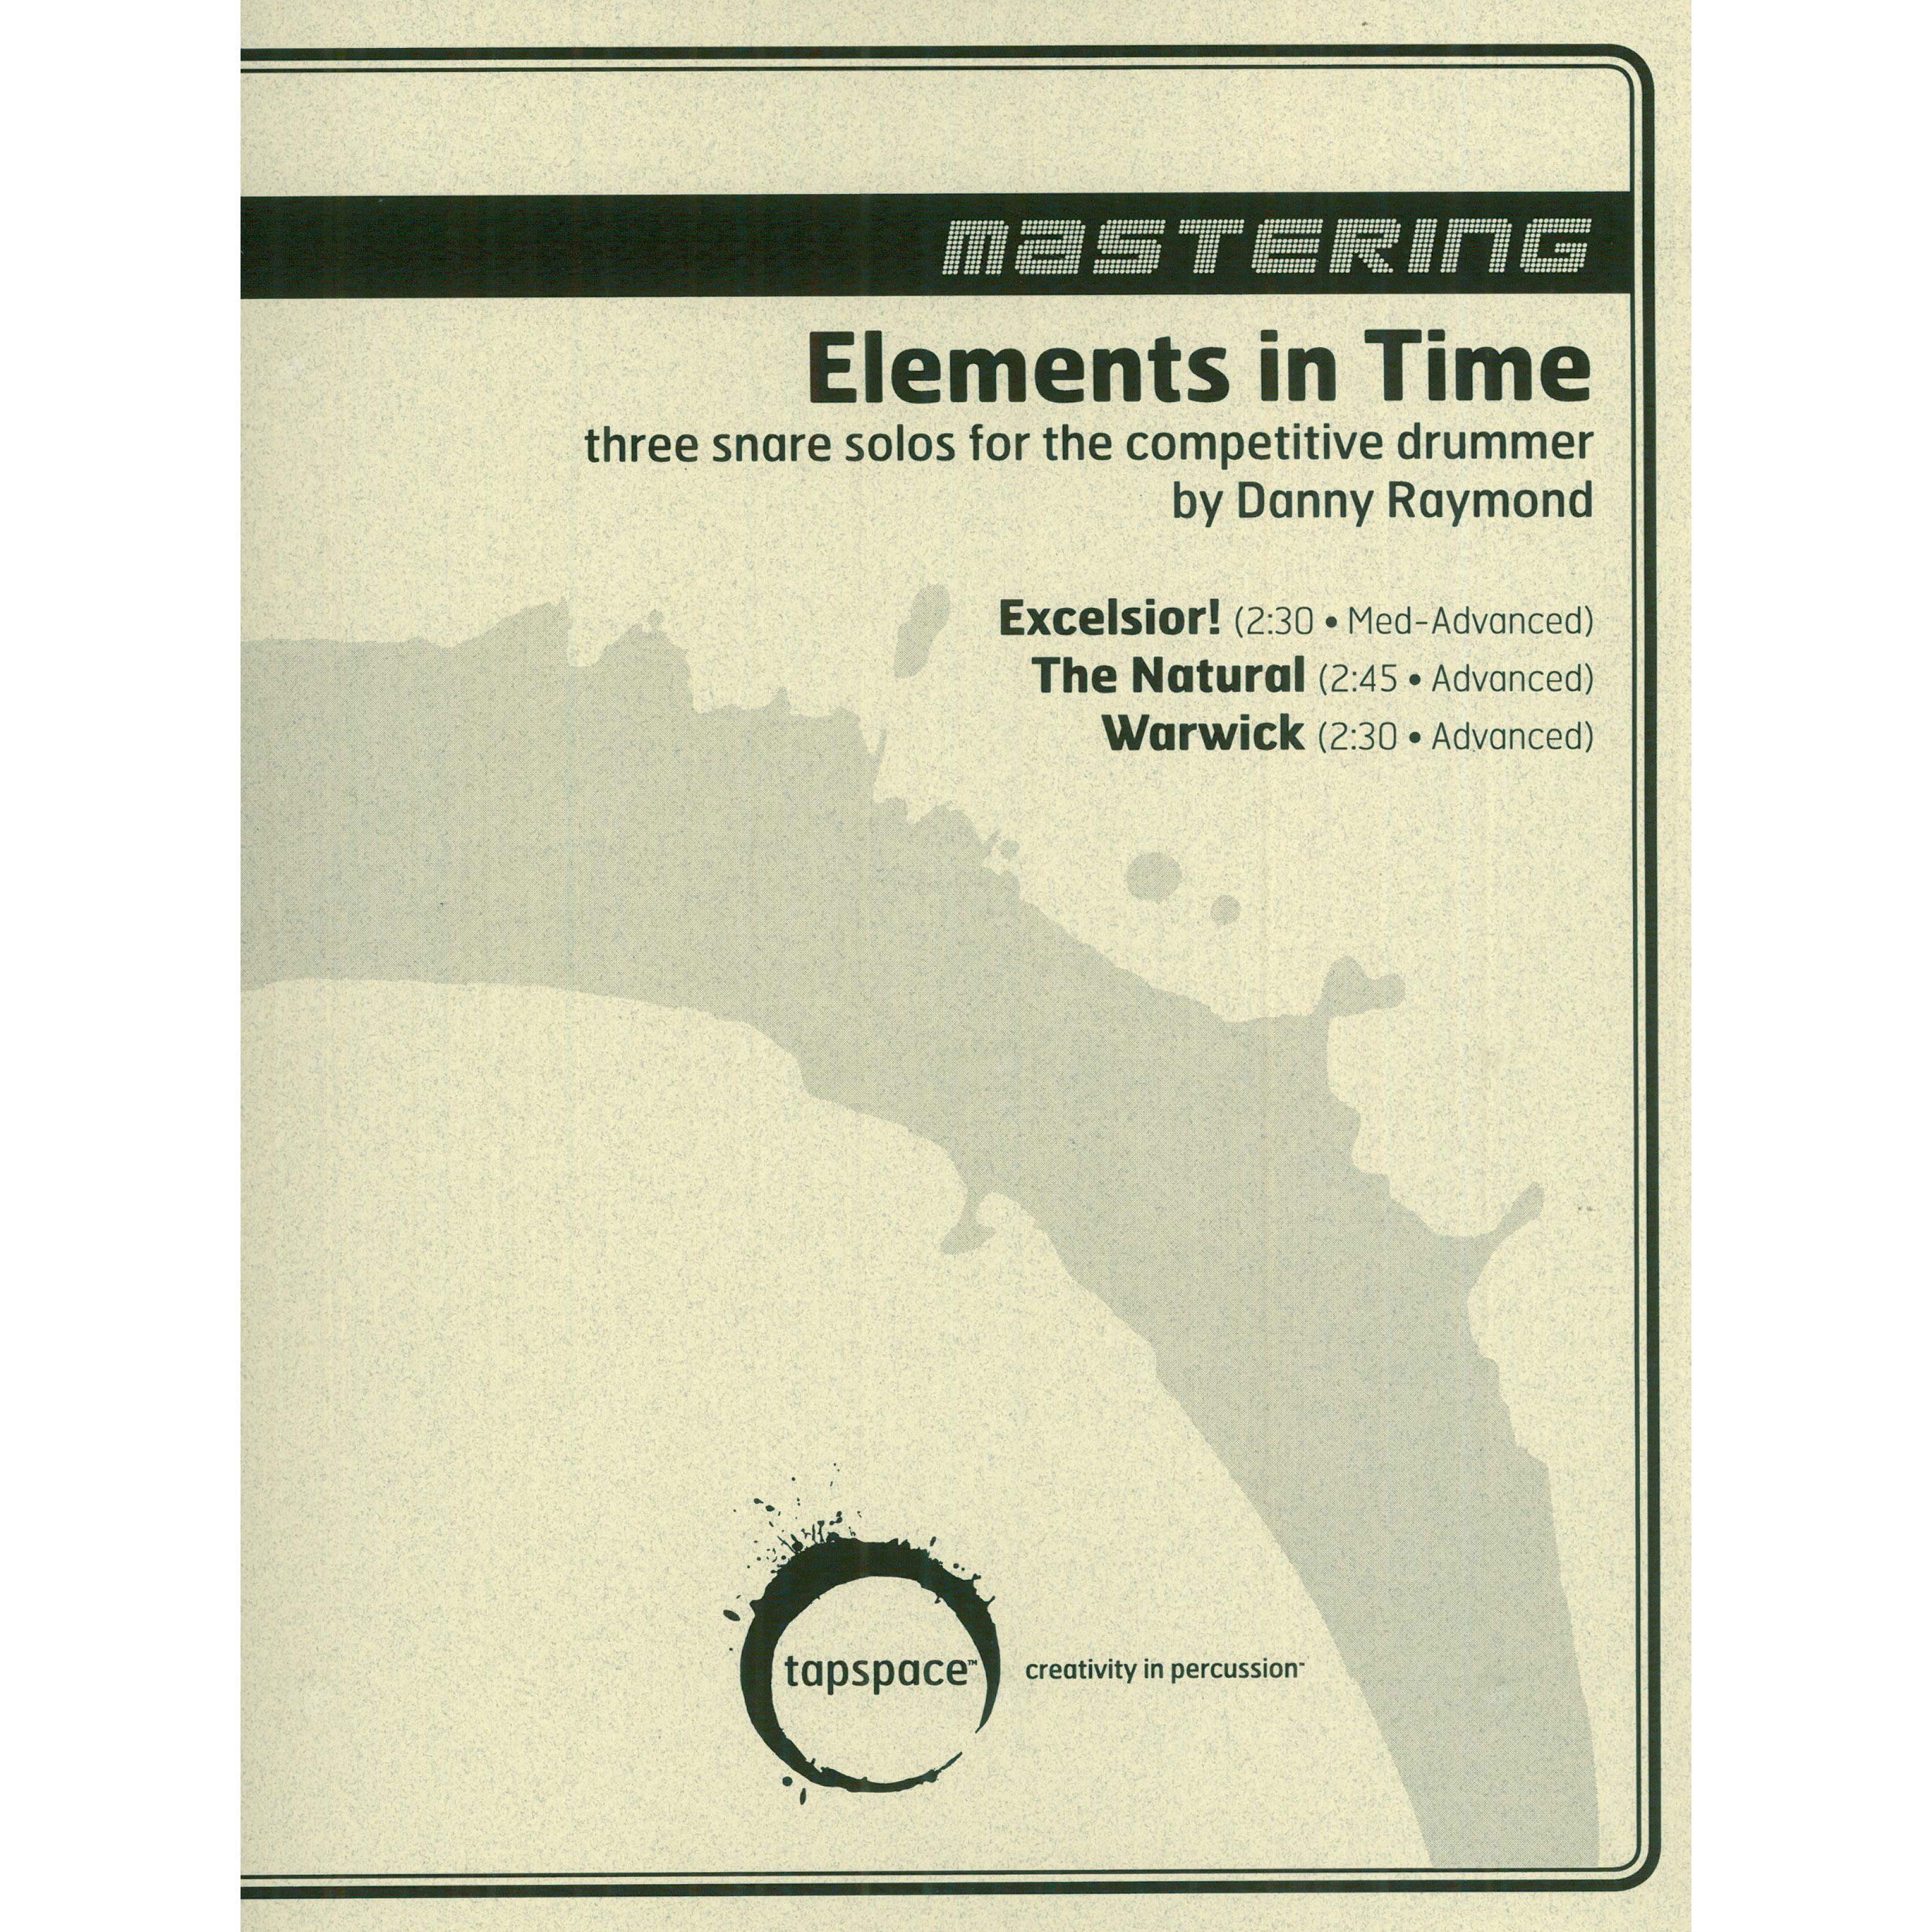 Elements in Time - MASTERING by Danny Raymond